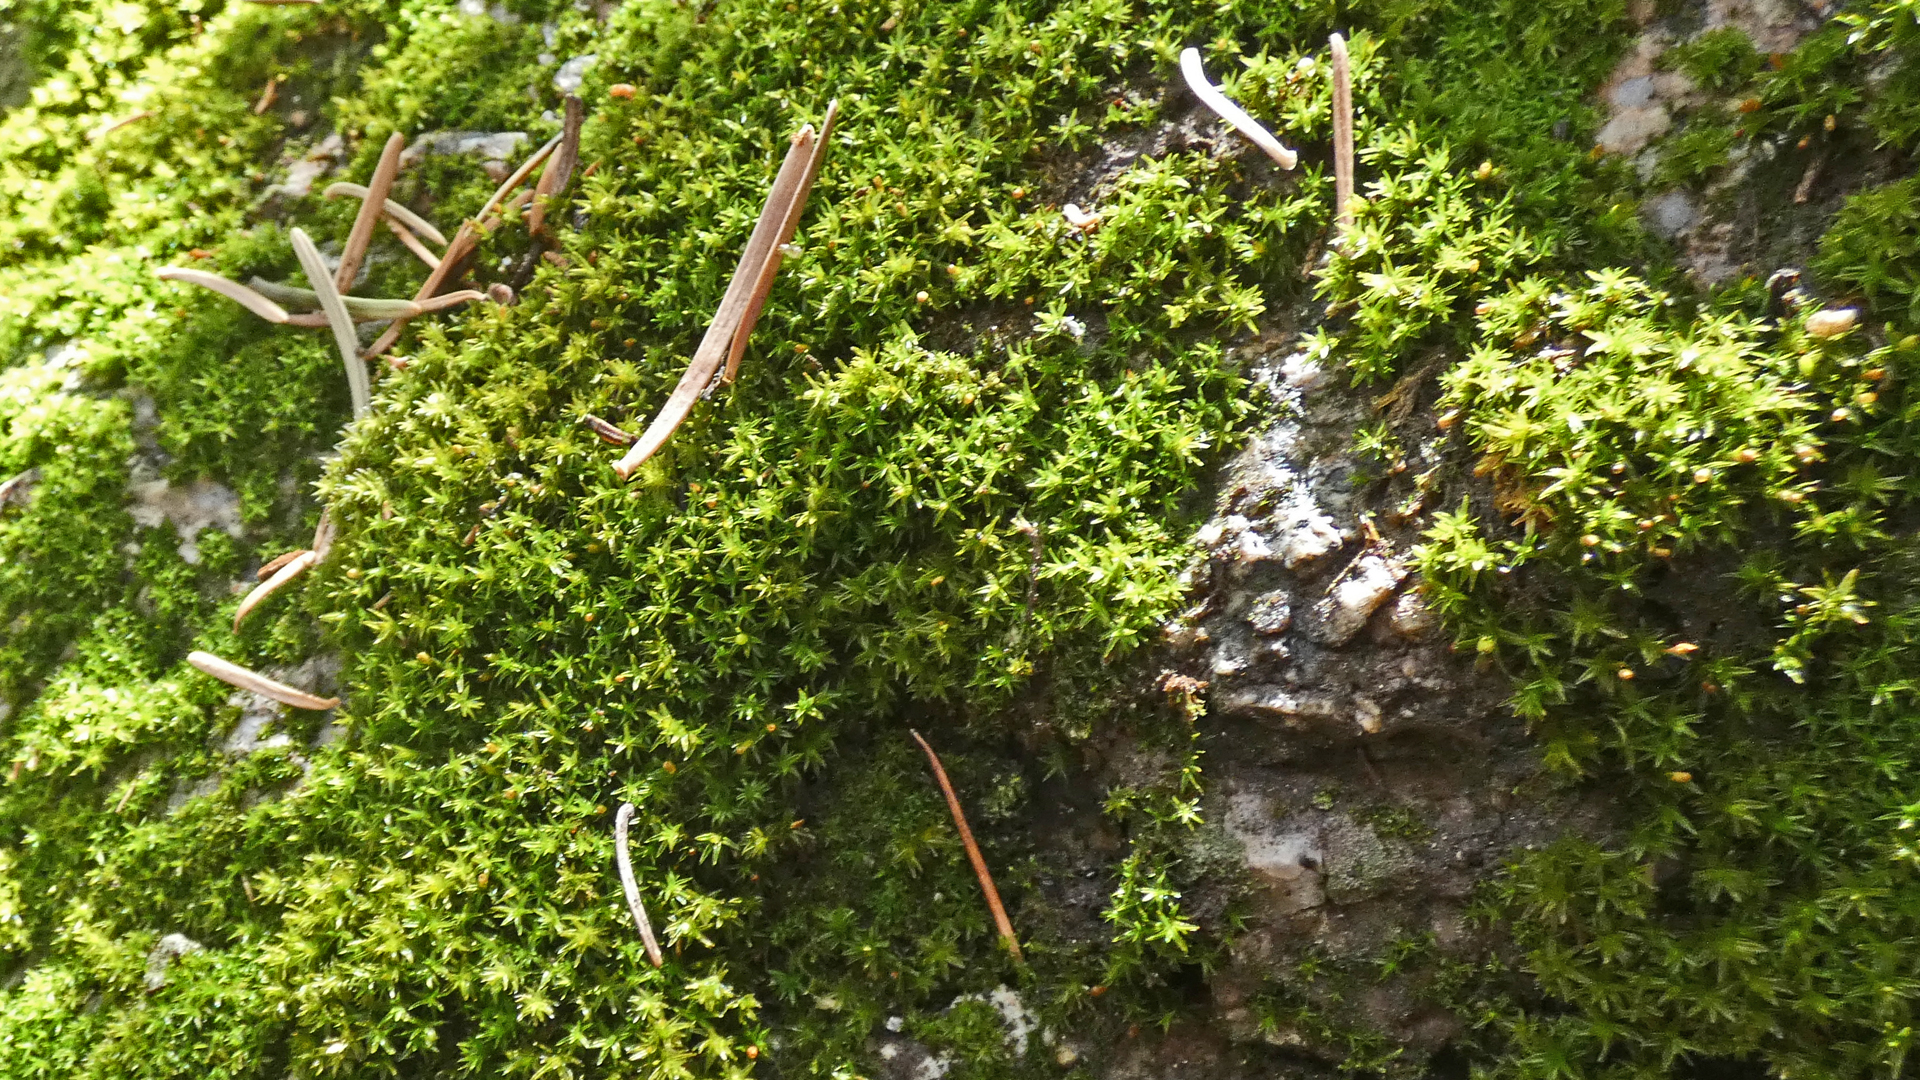 Moss on granite, with fir needles for scale.